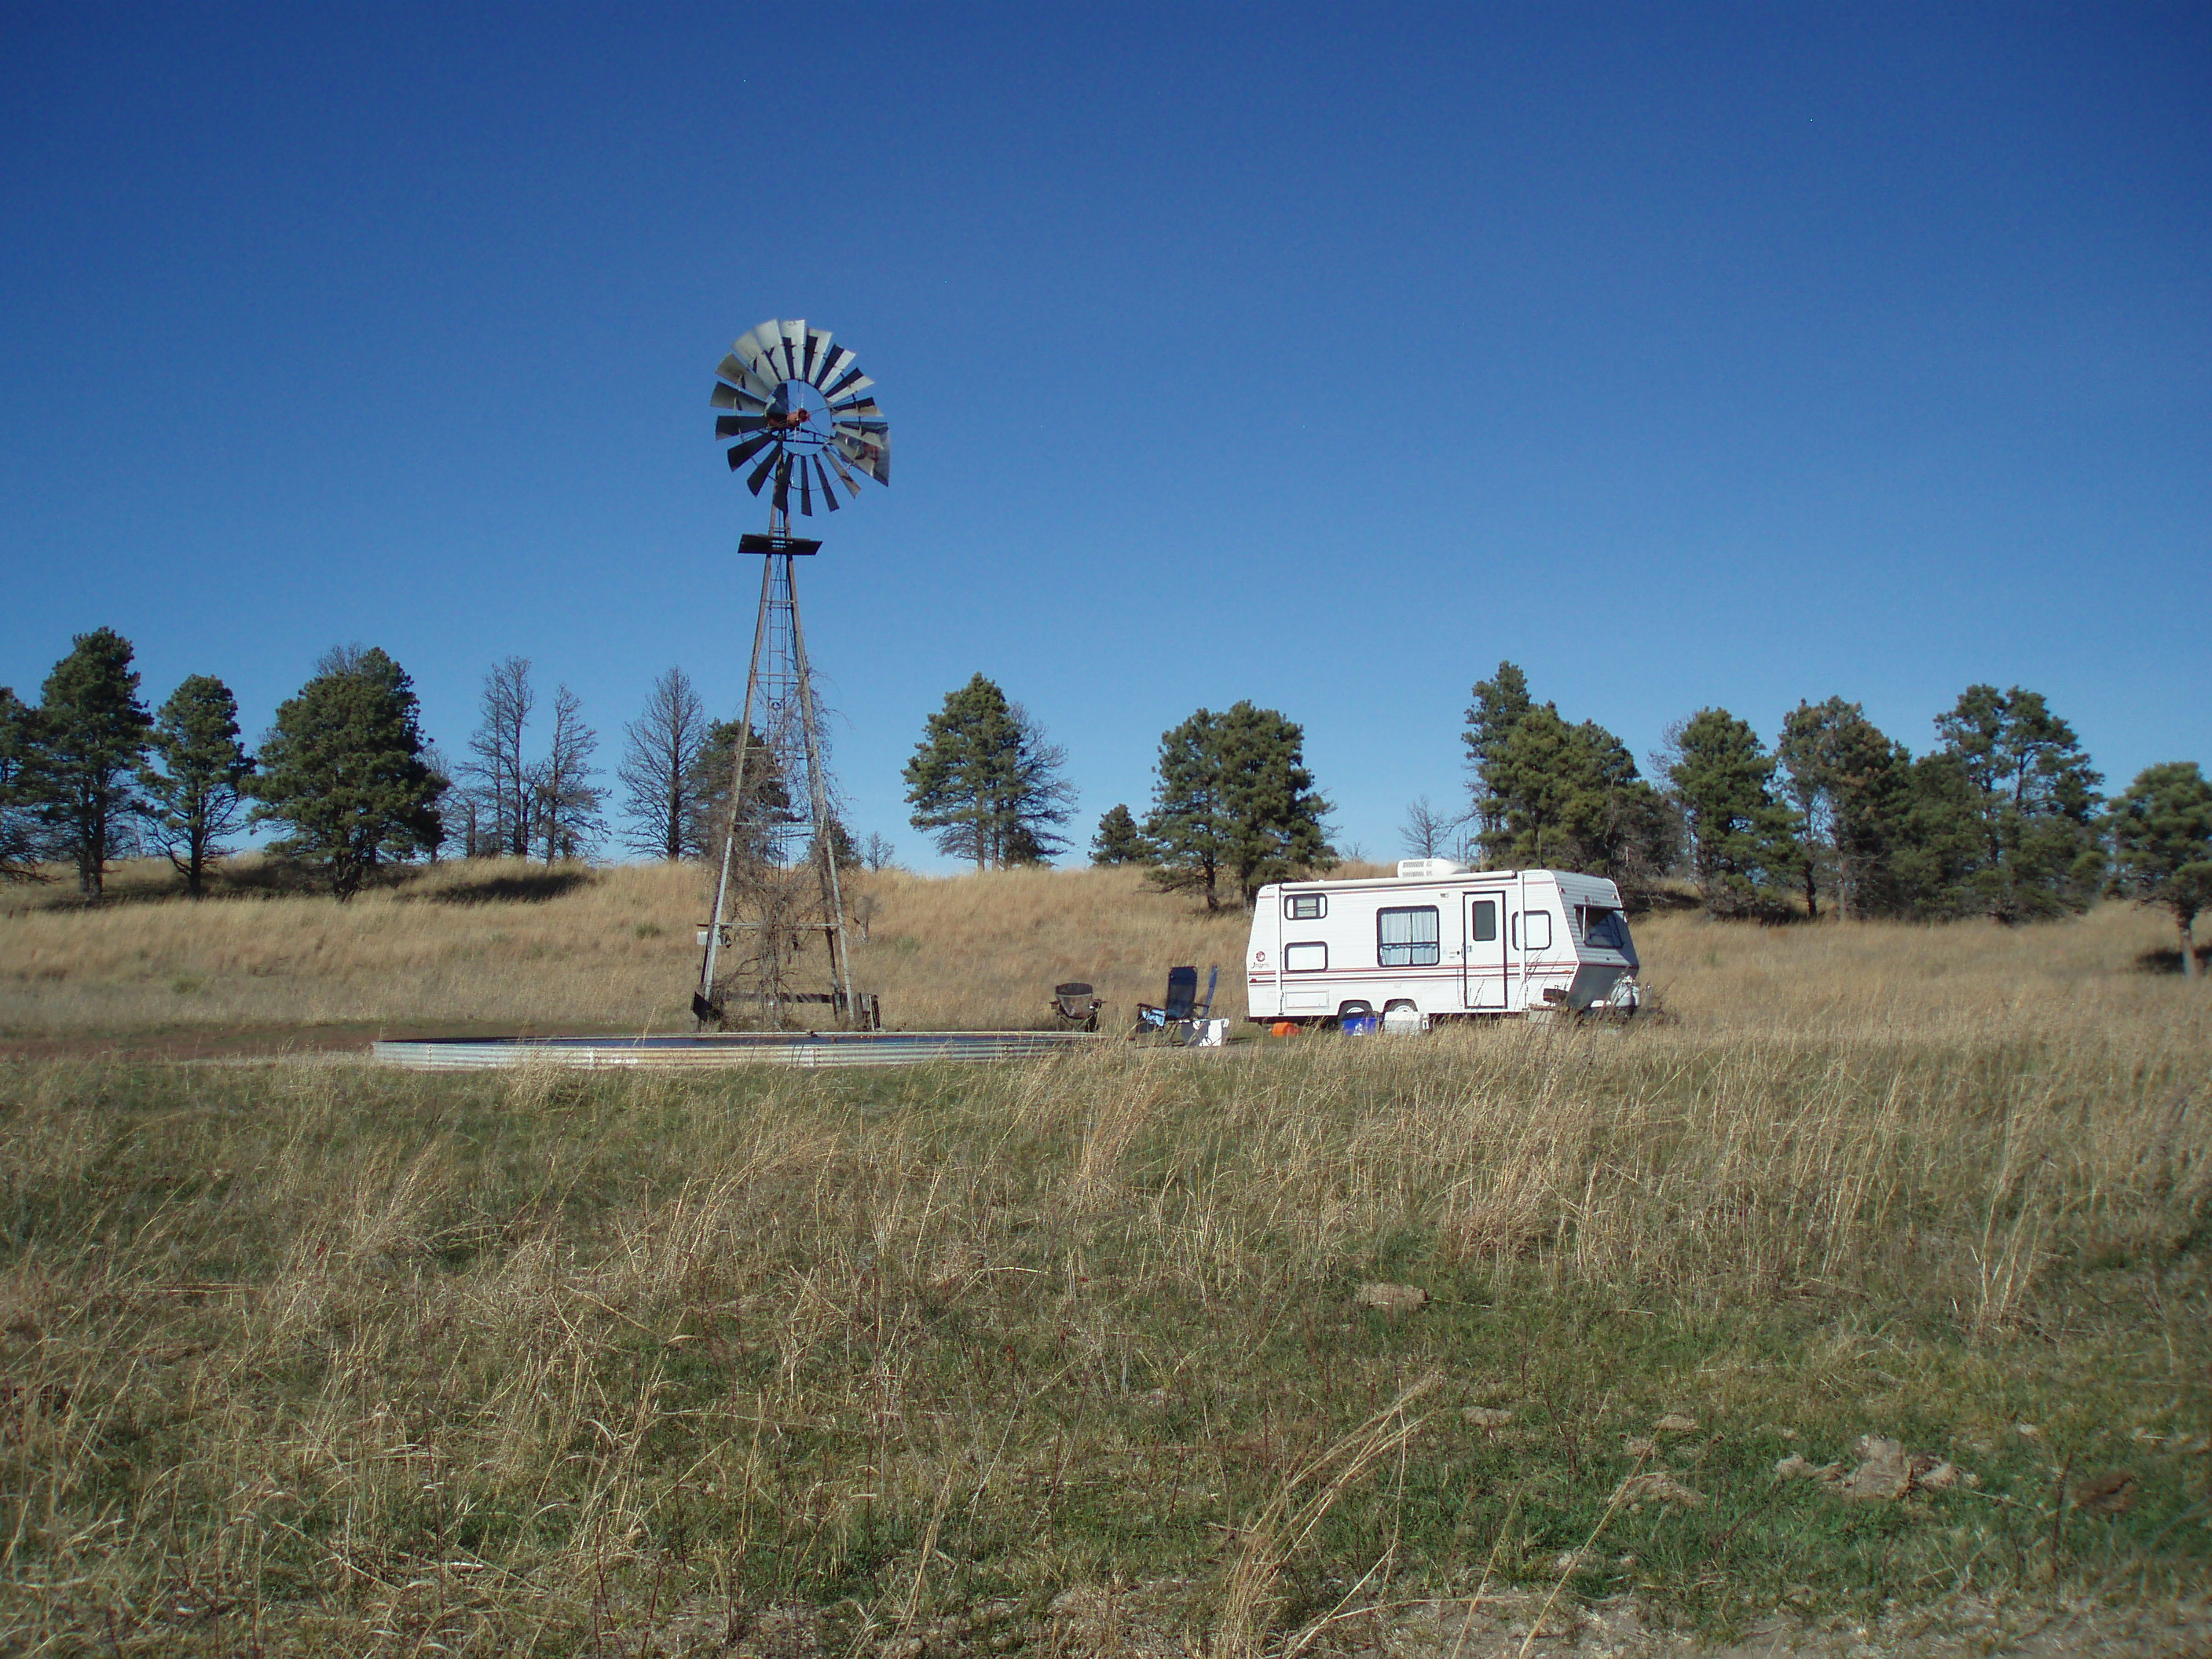 A small RV camped next to a windmill during deer season.